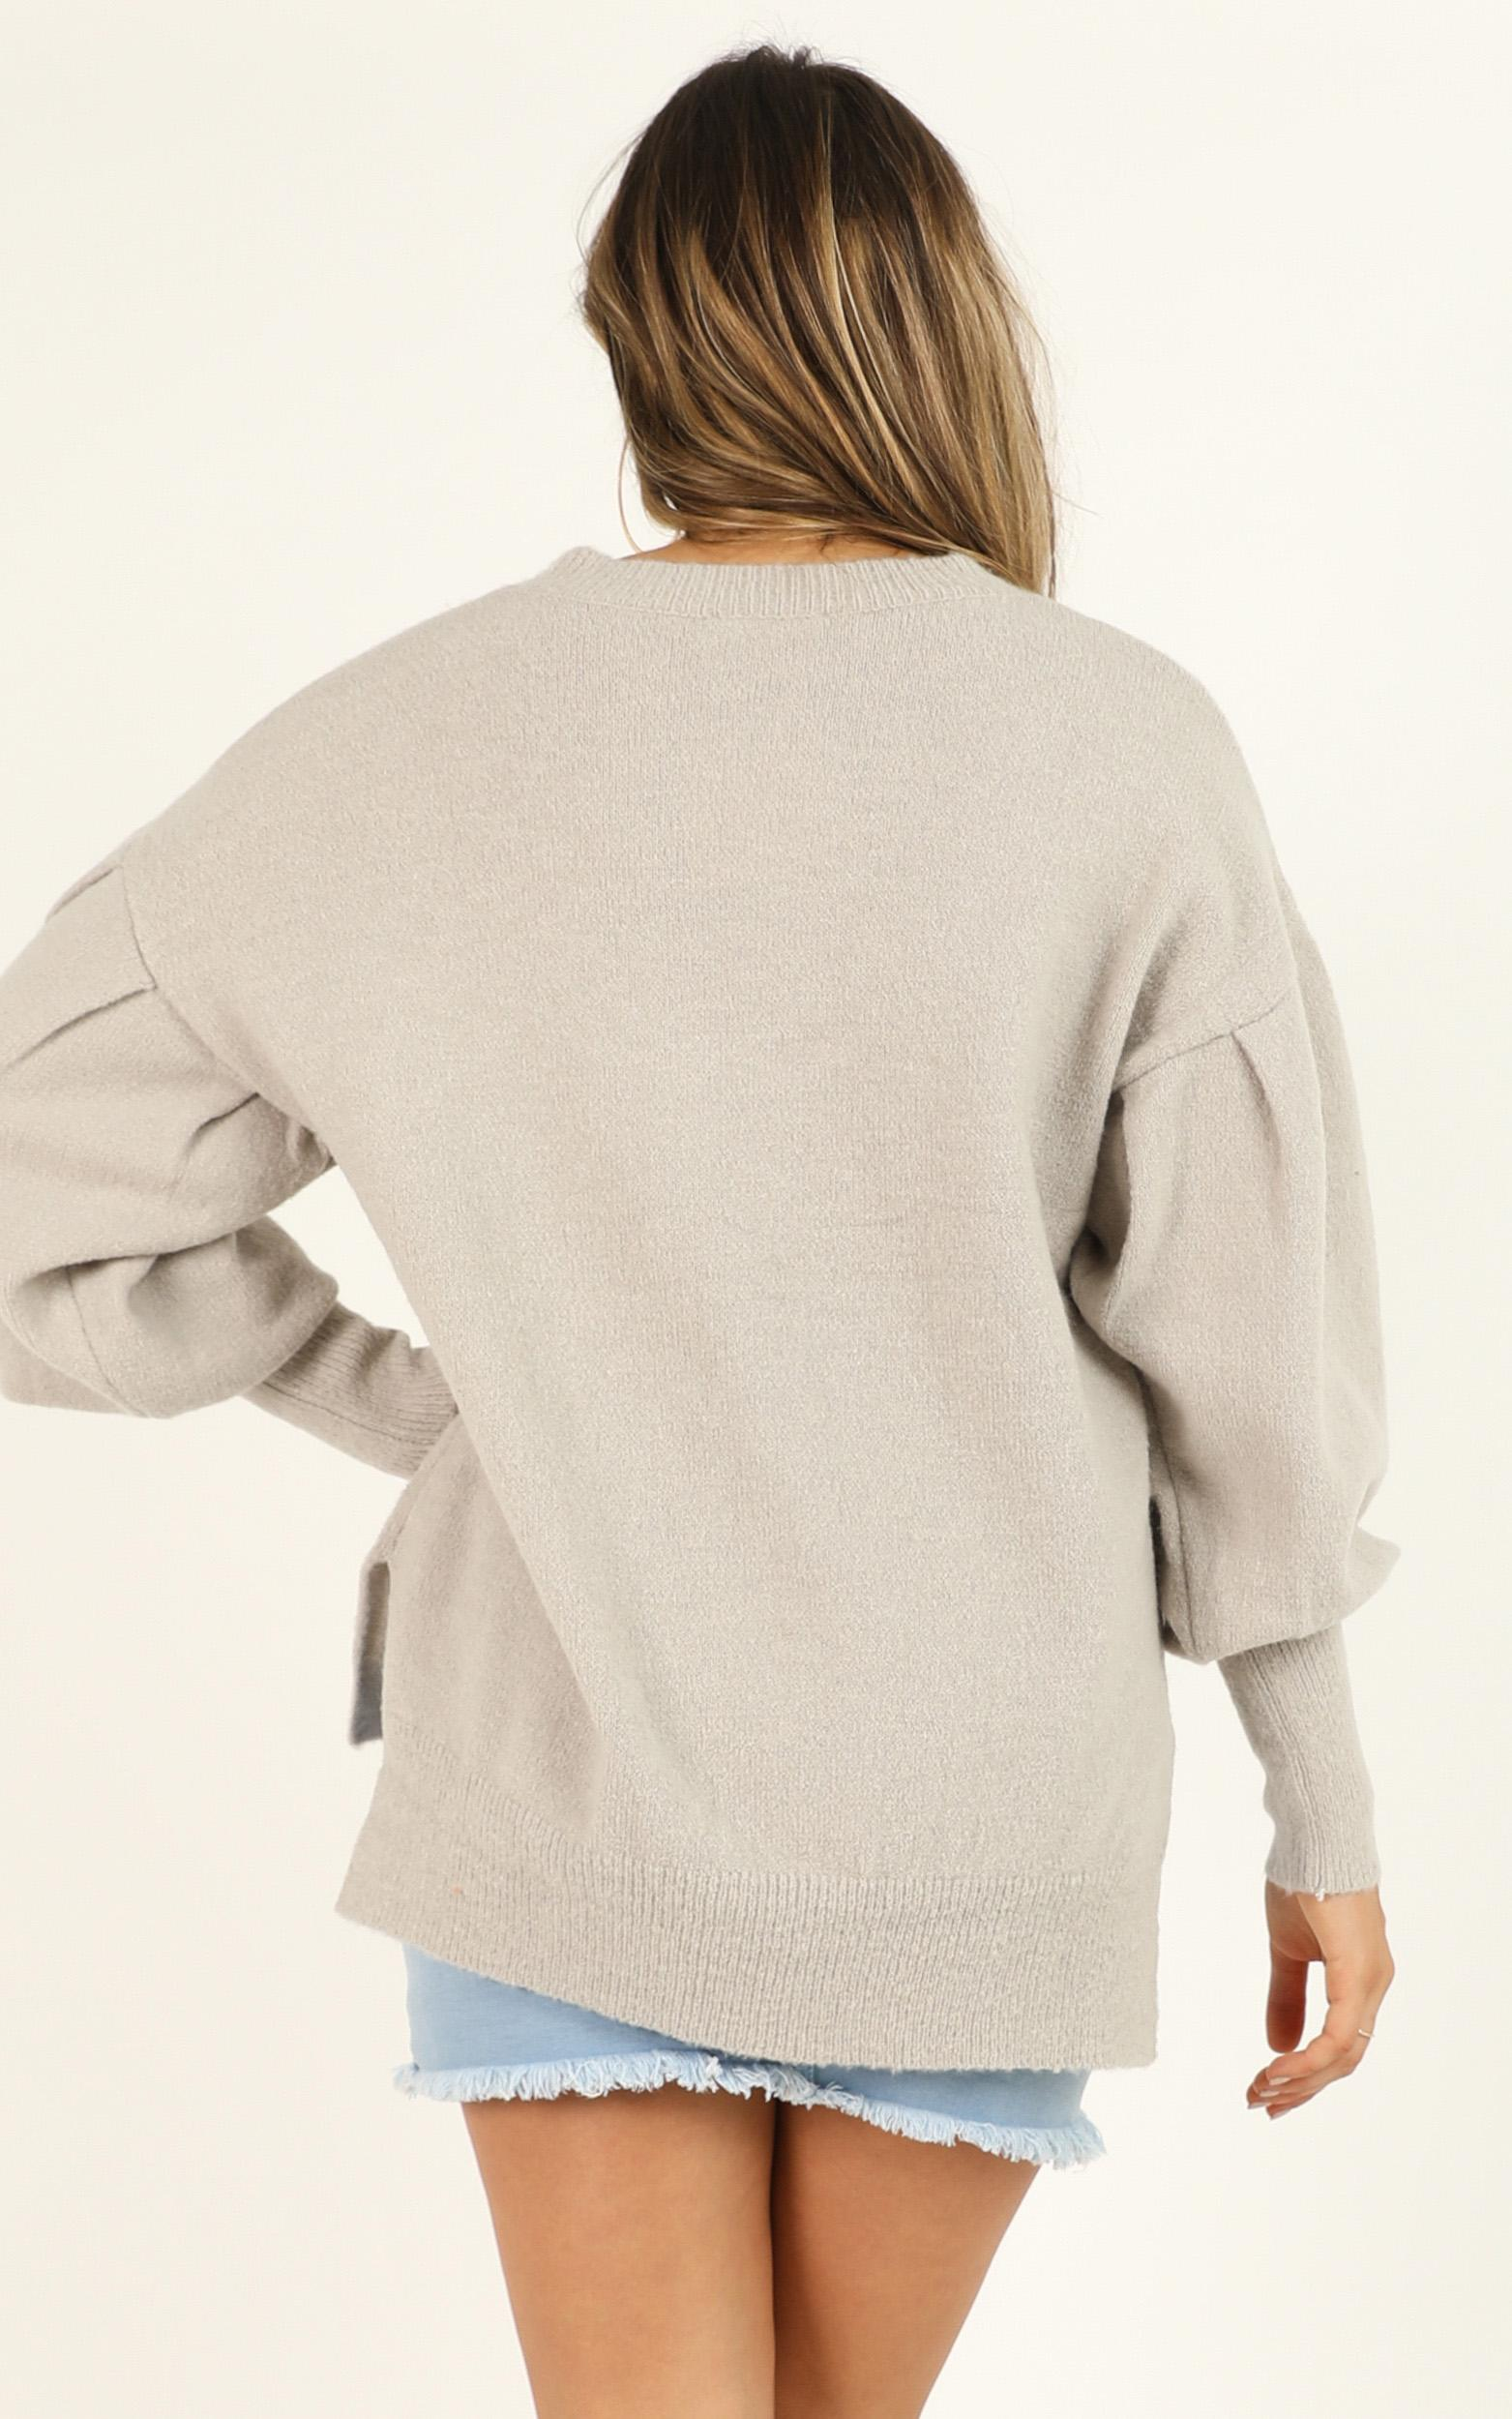 Made For This Moment knit jumper in grey - 12 (L), Grey, hi-res image number null